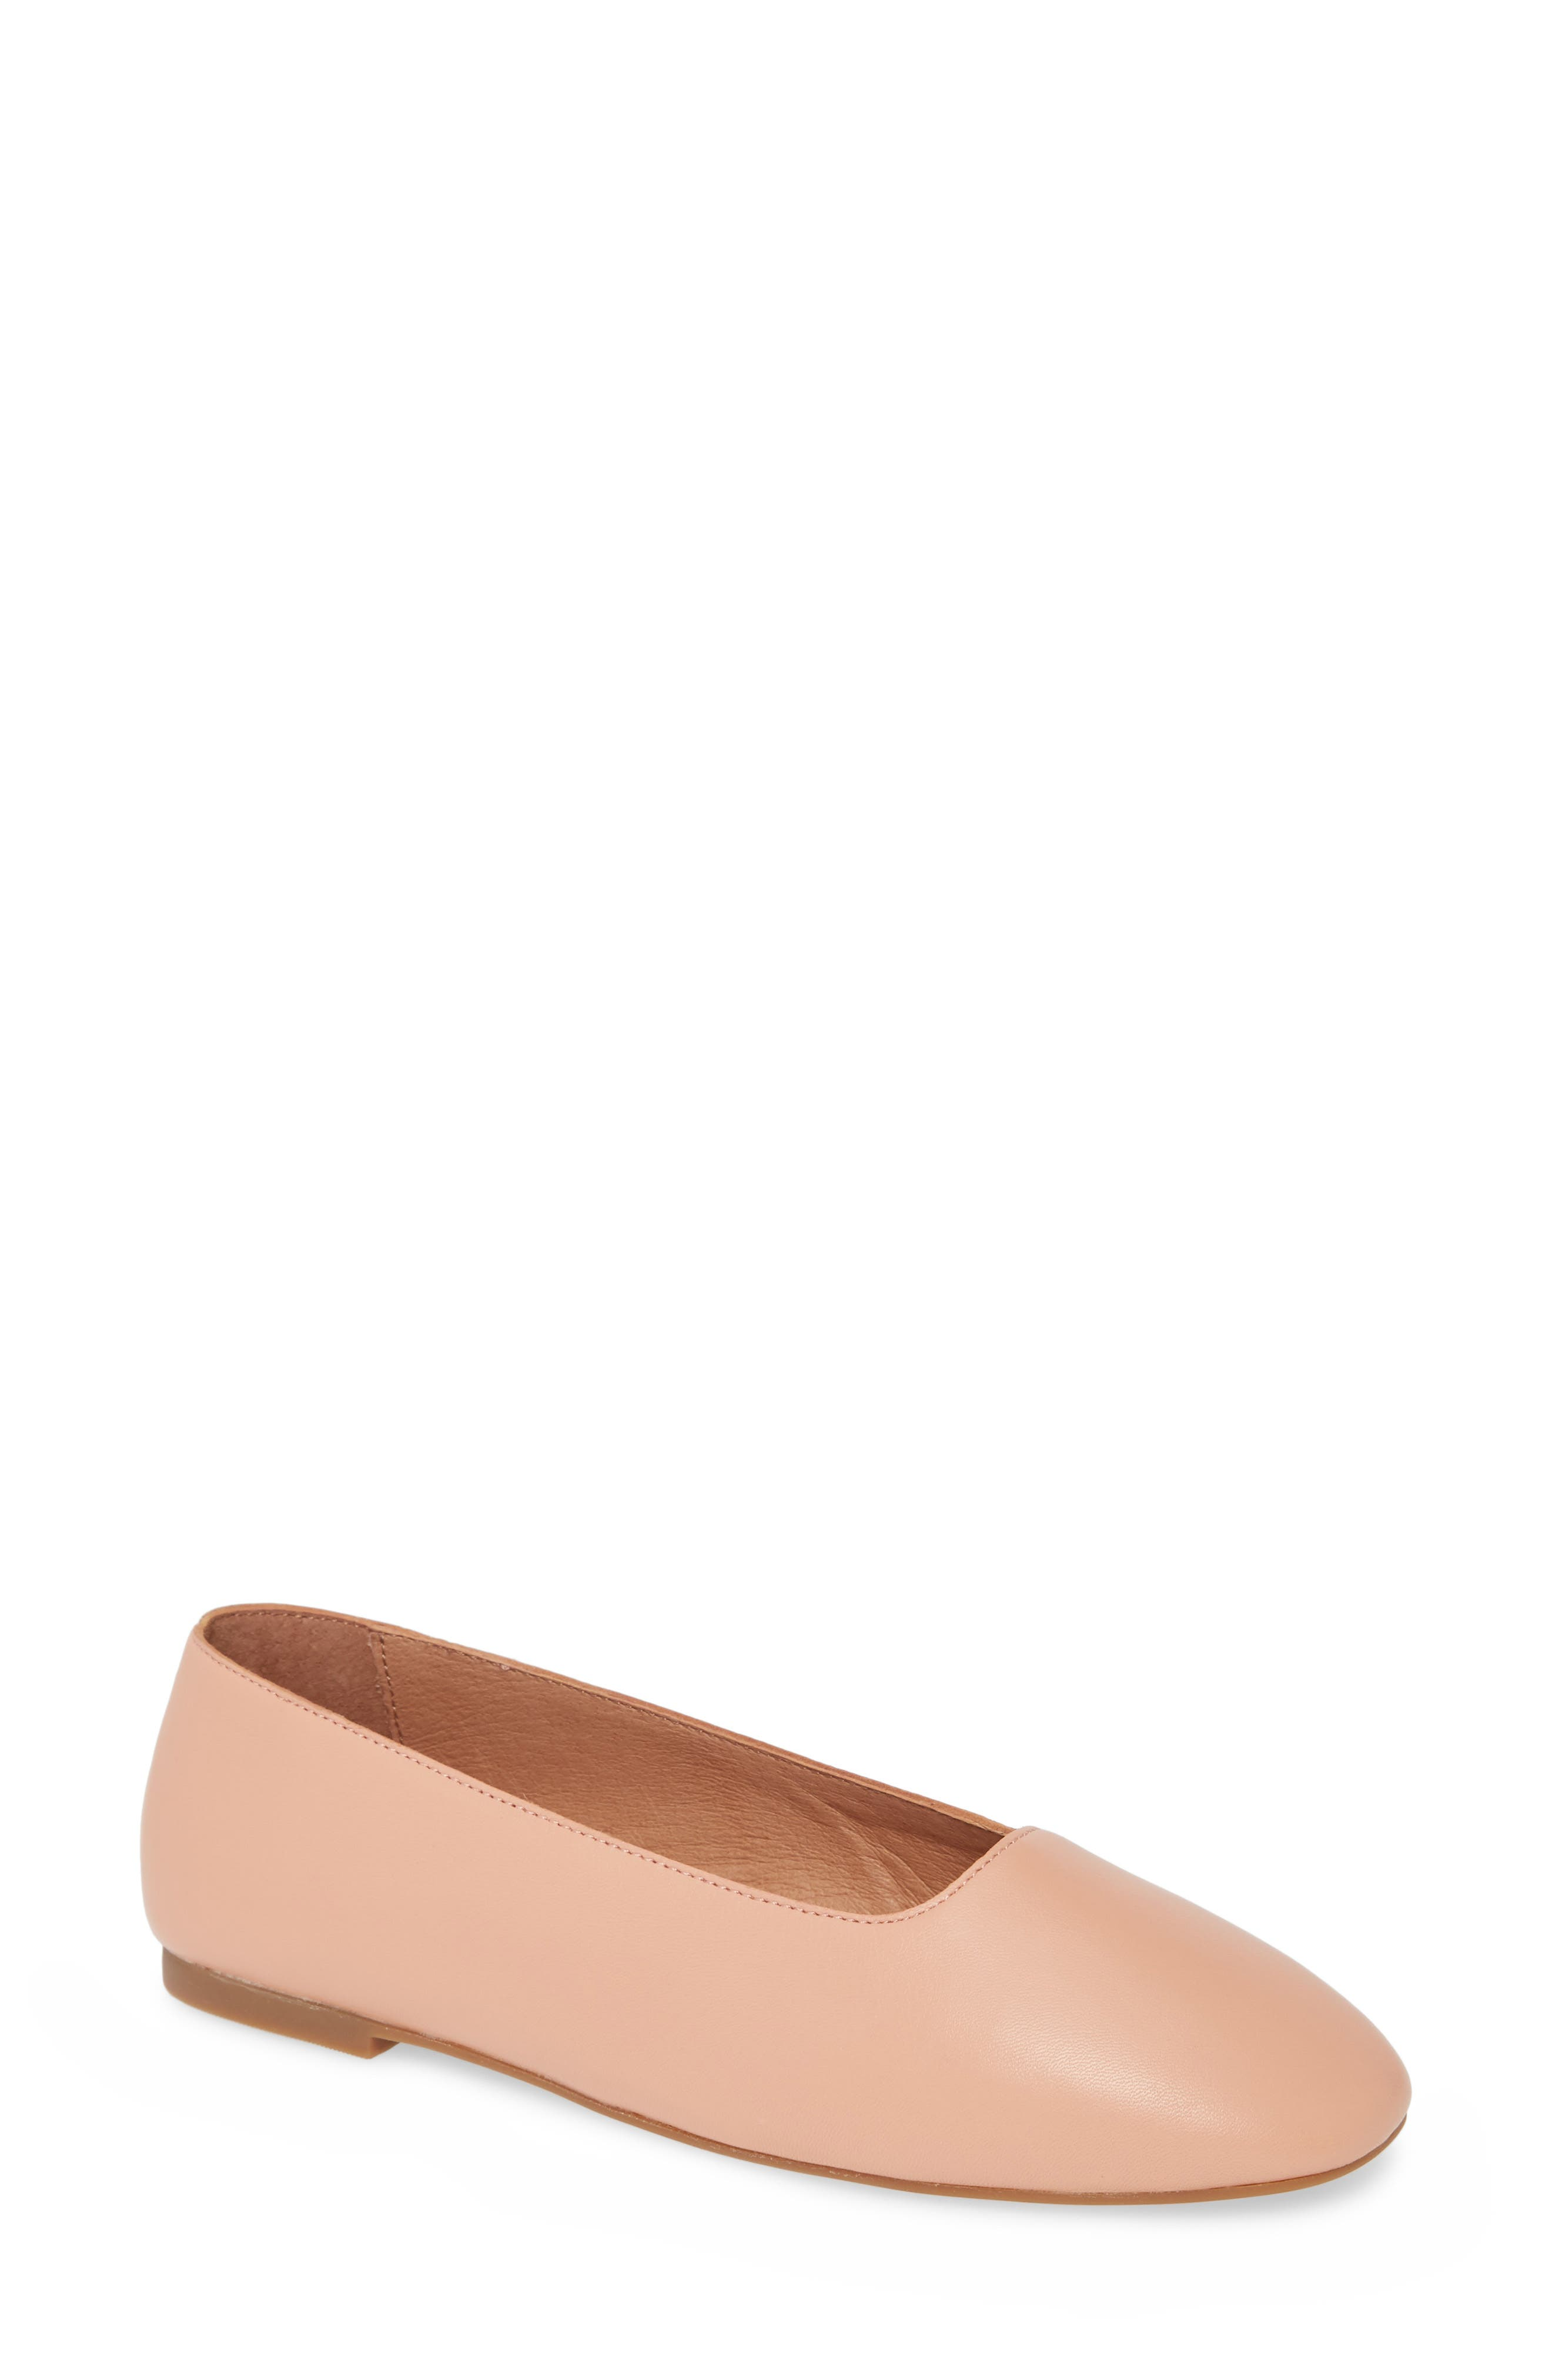 Minimalist and modern, this wear-with-everything flat in soft, supple leather has a squared-off shape you\\\'ll love. Cushiness alert: an extra layer of padding makes it even comfier. Style Name: Madewell The Cory Flat (Women). Style Number: 5925024. Available in stores.